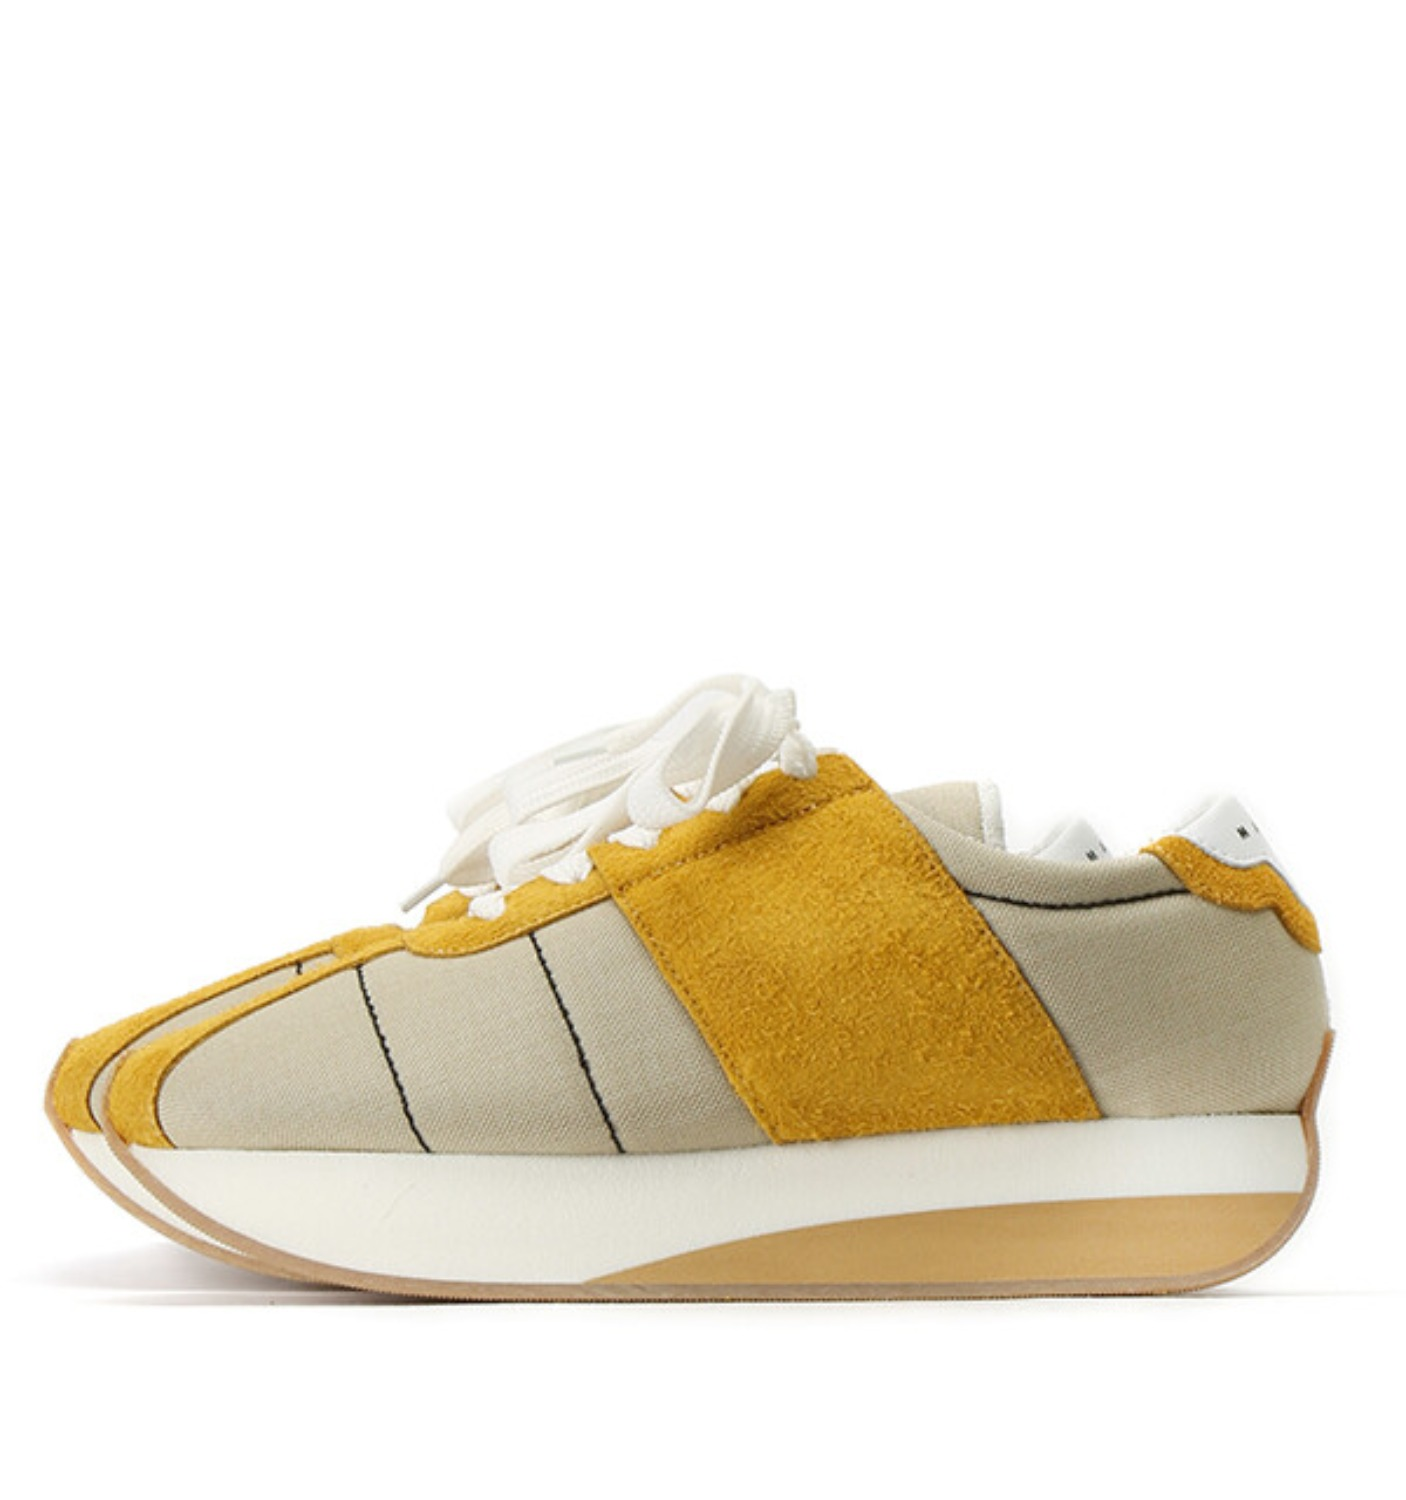 SNEAKERS(SNZU000150) YELLOW/BEIGE